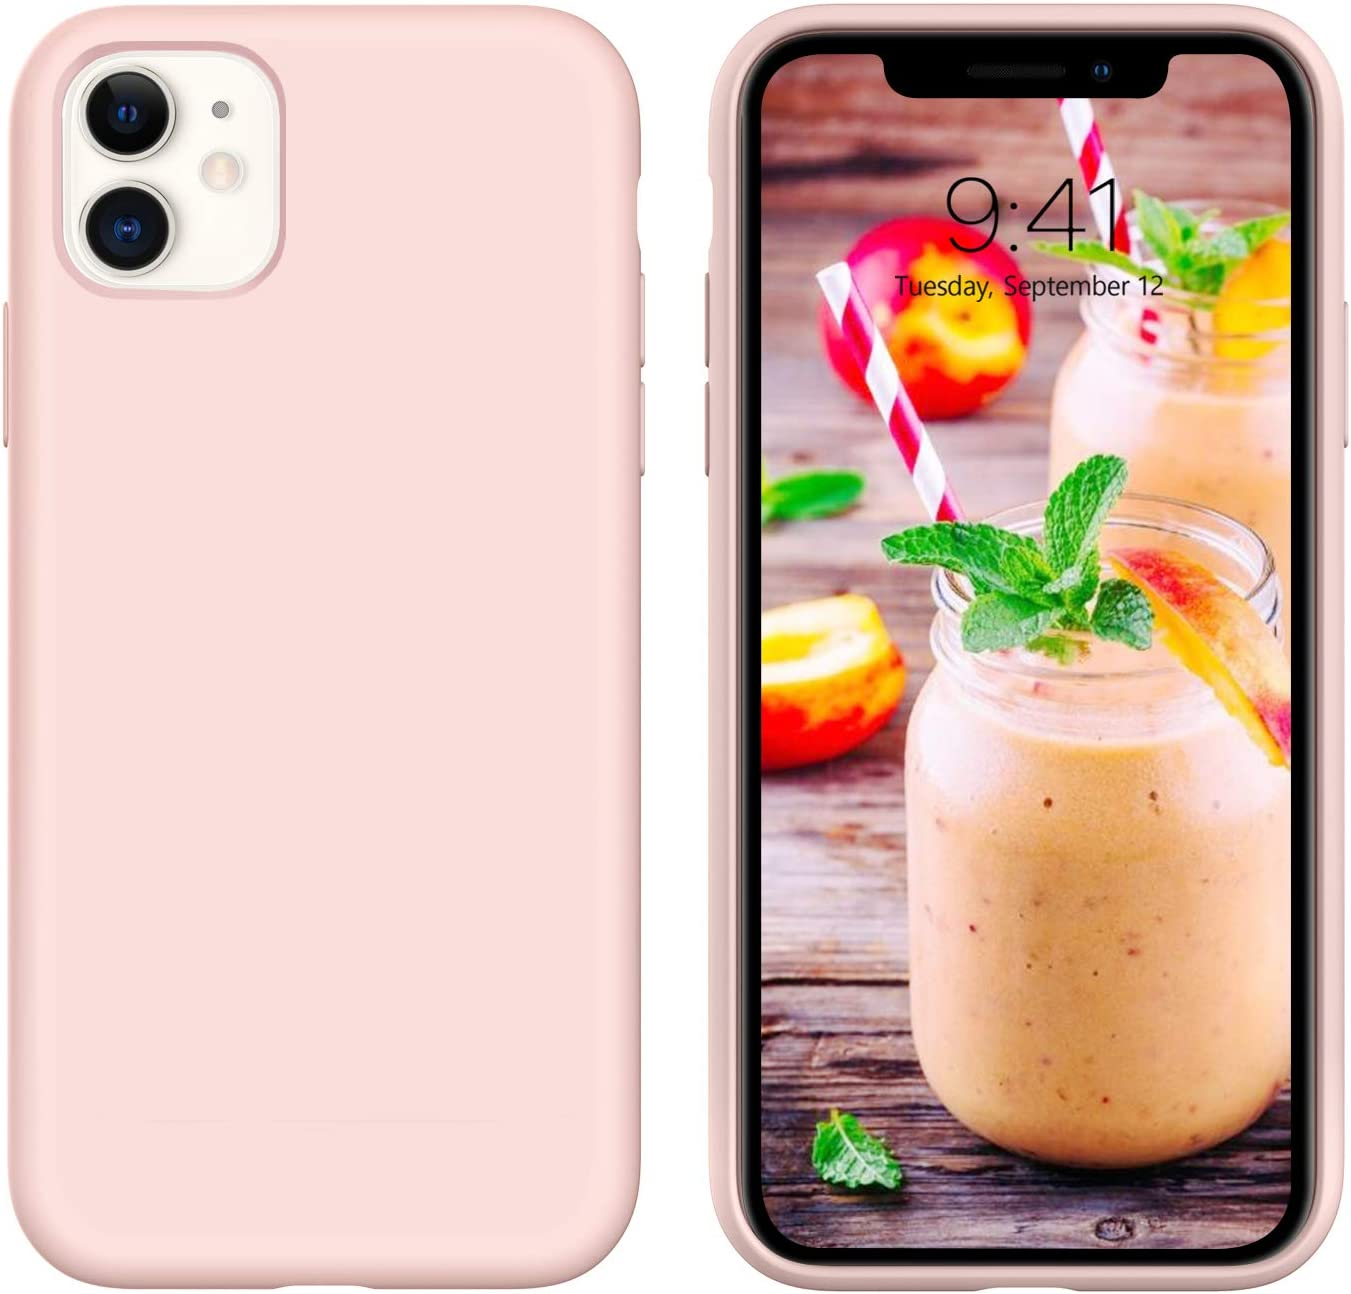 iPhone 11 Case 2019 GUAGUA Liquid Silicone Soft Gel Rubber Slim Lightweight Microfiber Lining Cushion Texture Cover Shockproof Protective Anti-Scratch Phone Cases for iPhone 11 6.1-inch 2019 Pink